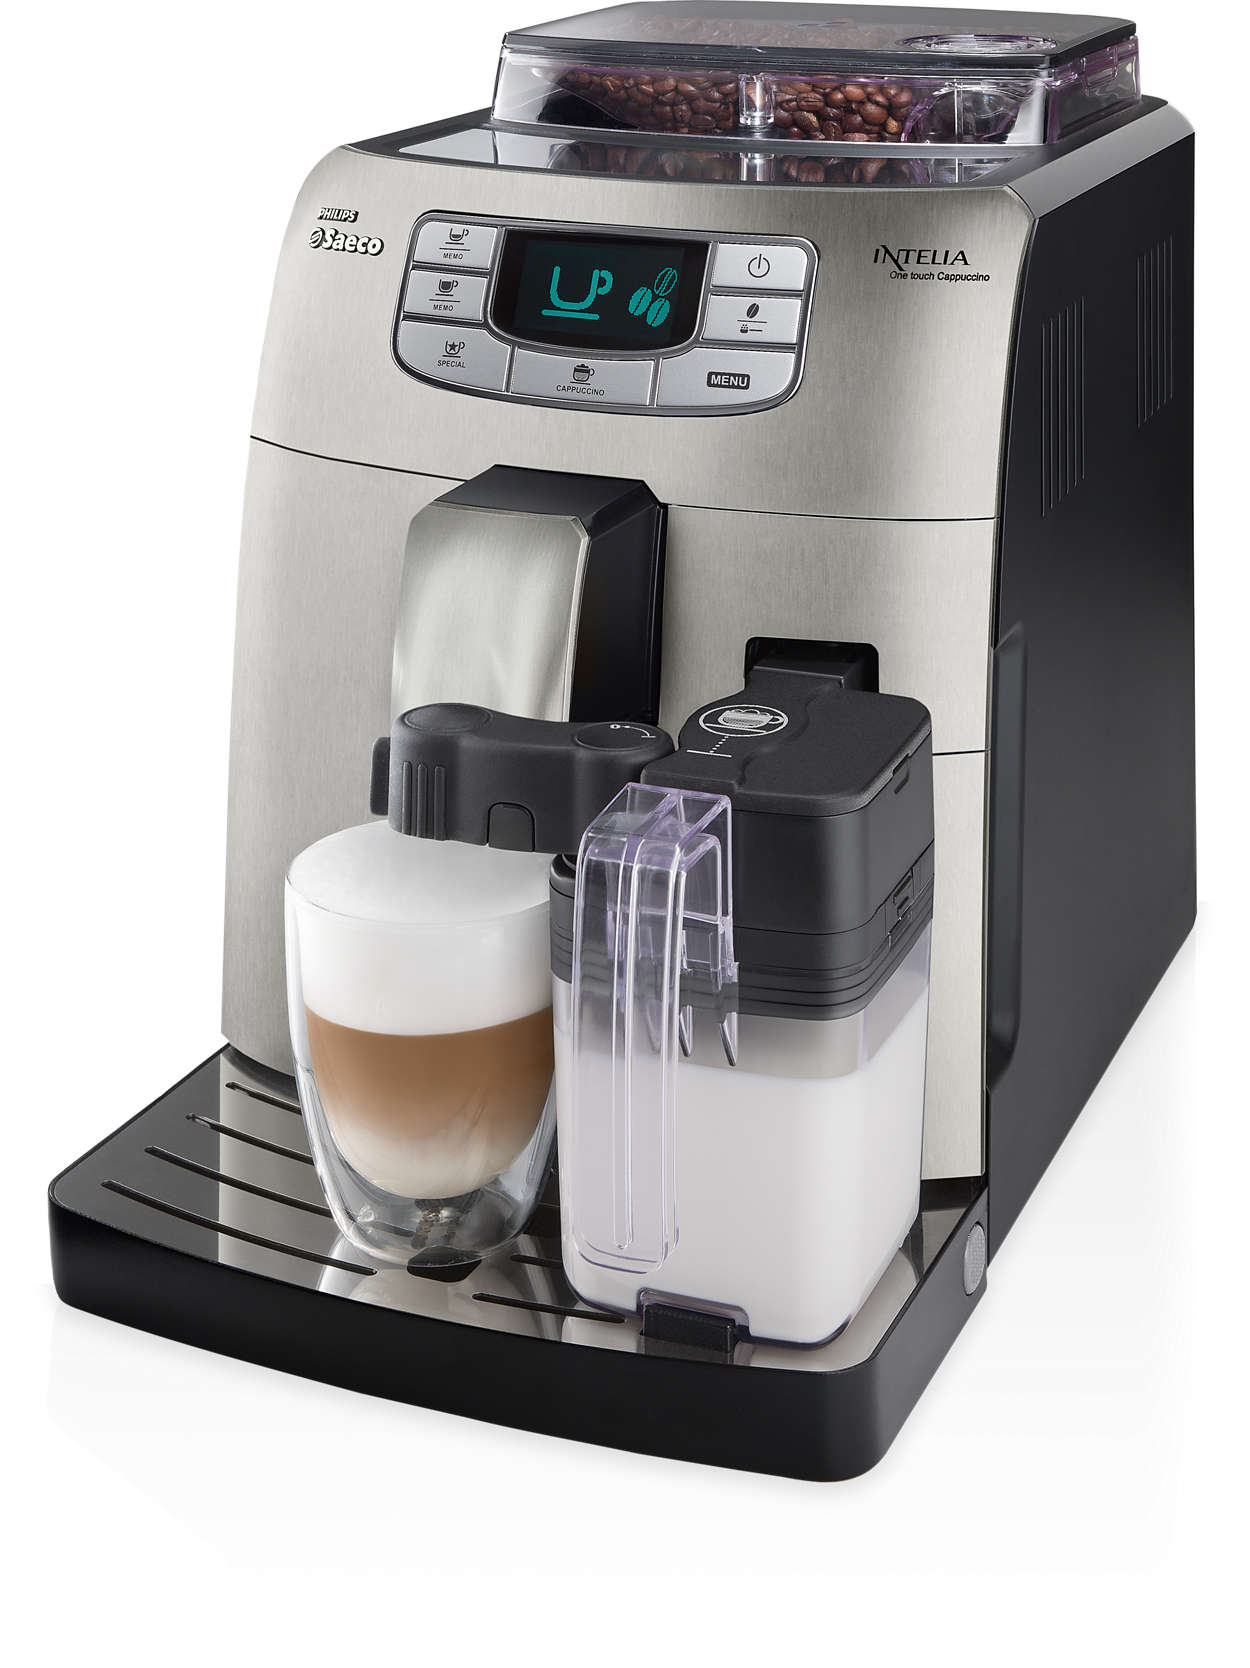 intelia super automatic espresso machine hd8753 87 saeco. Black Bedroom Furniture Sets. Home Design Ideas